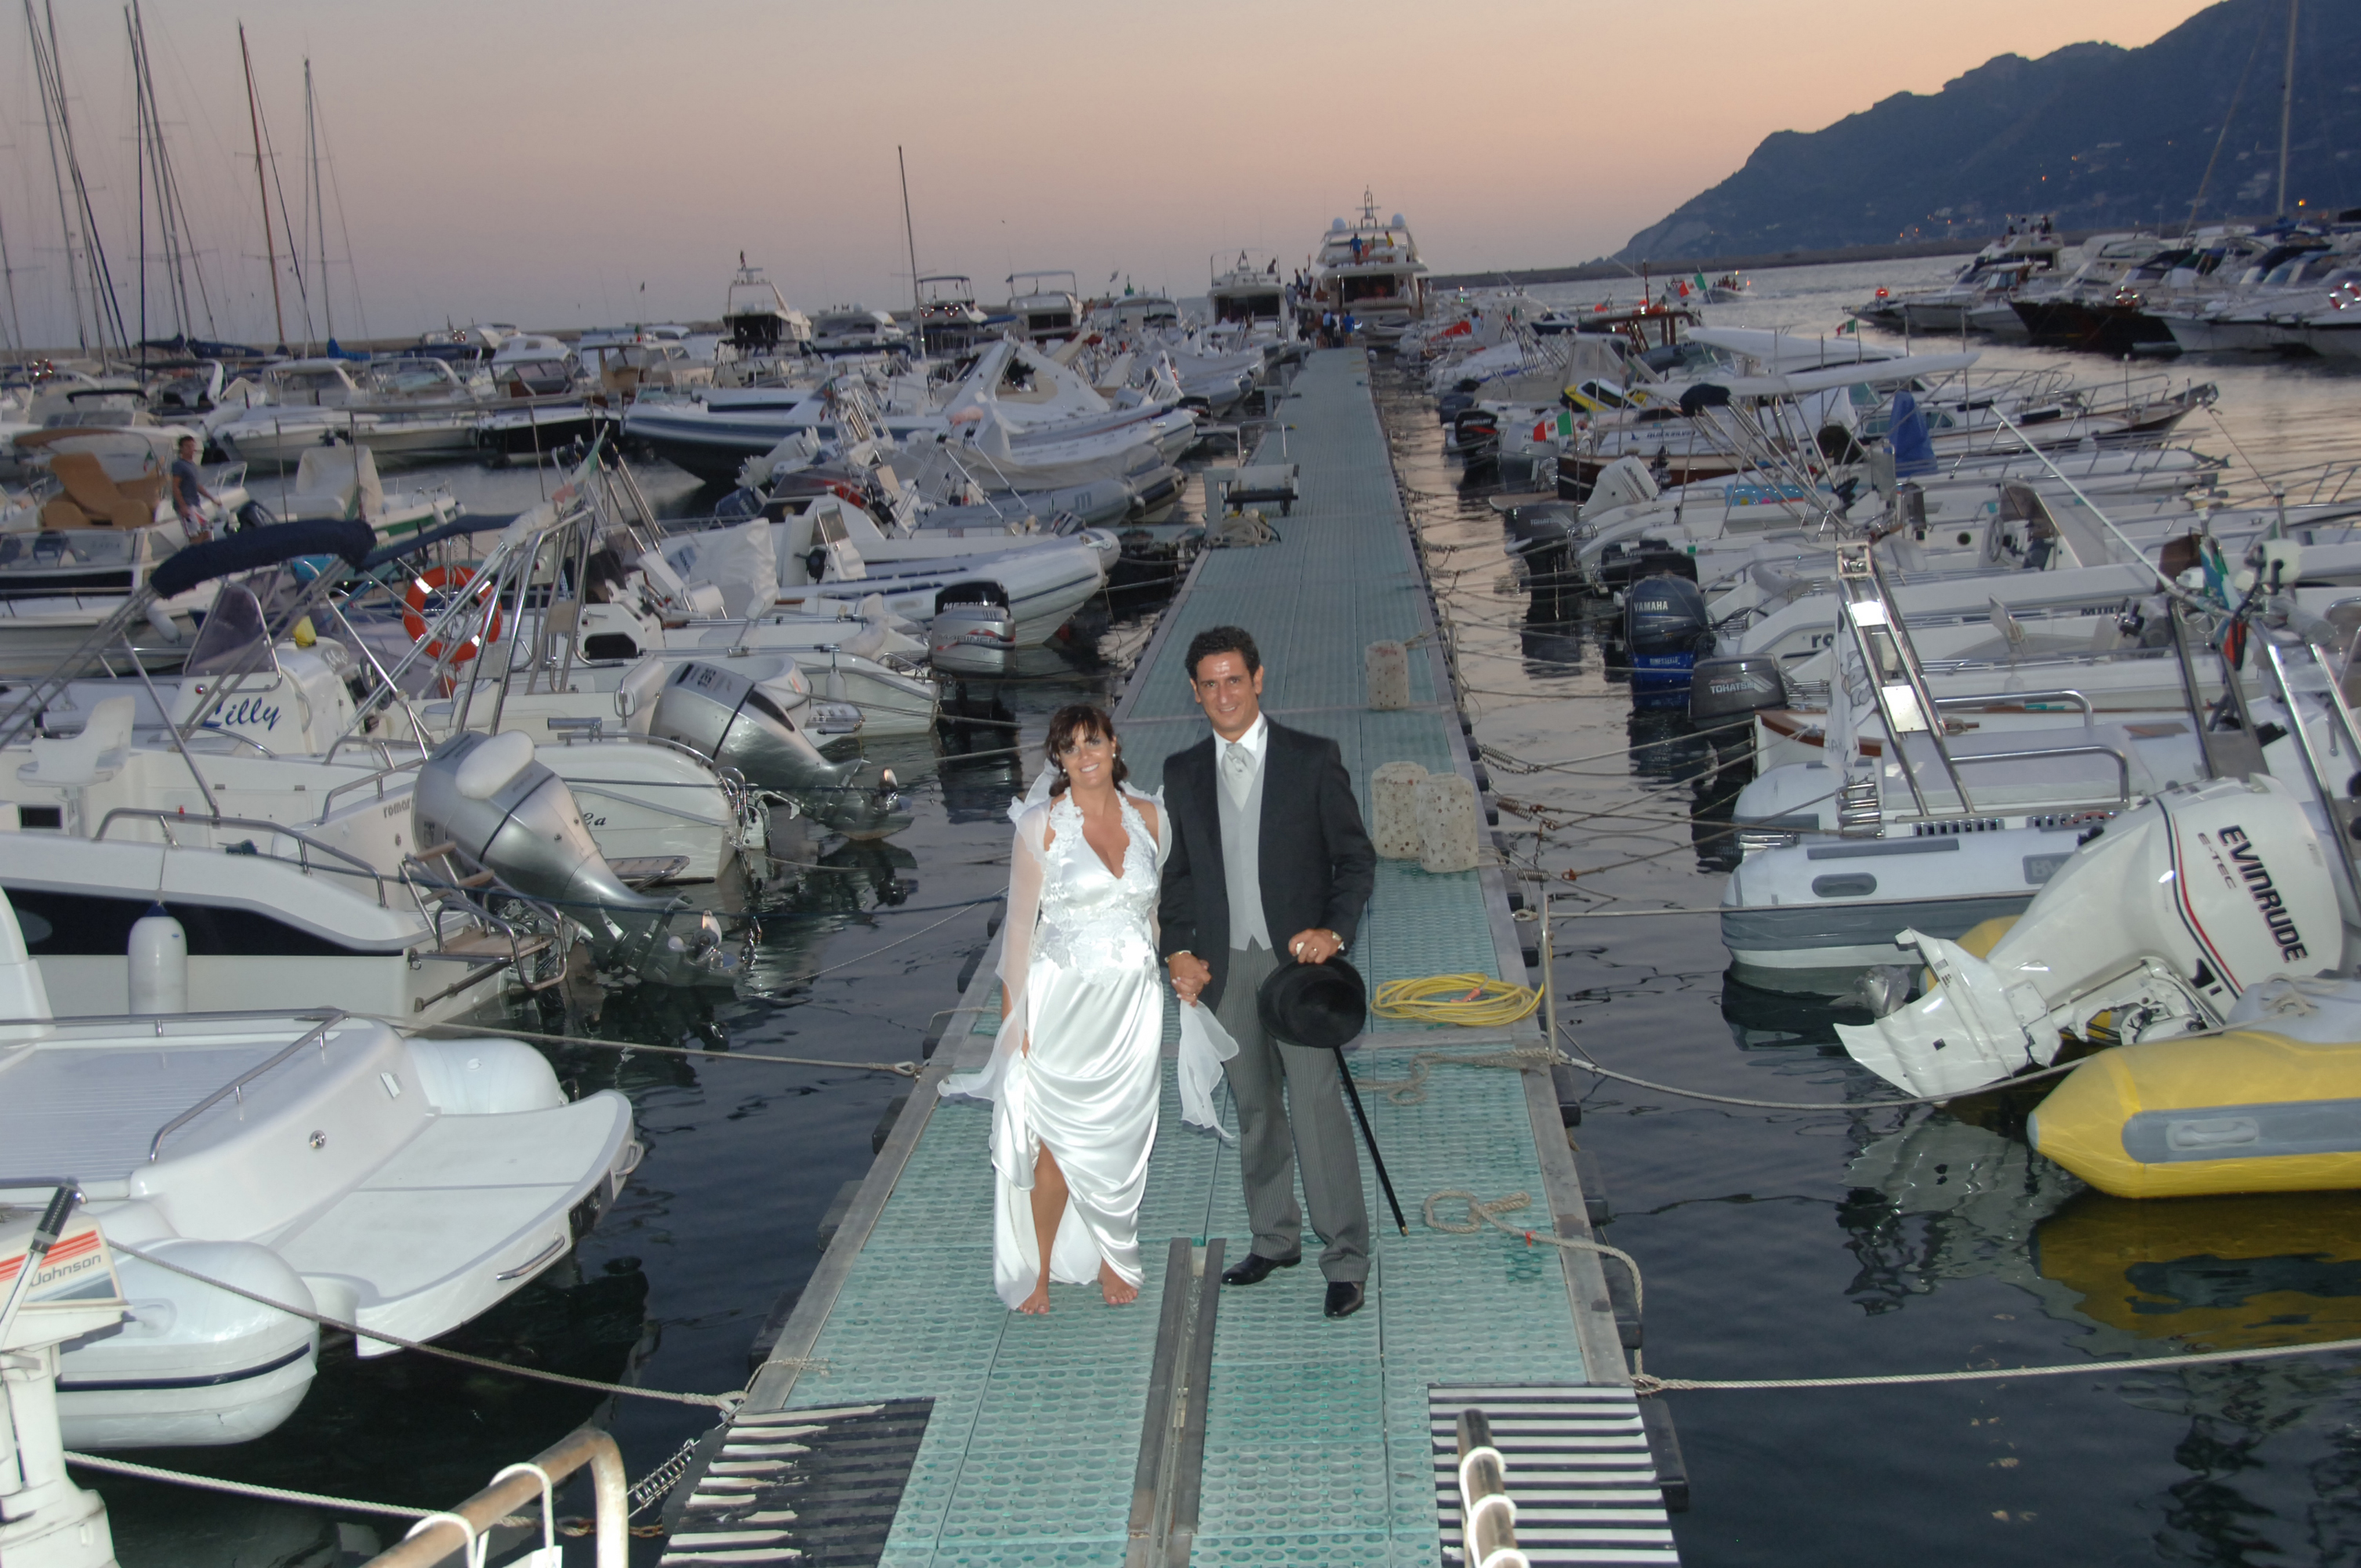 http://www.weddingamalfi.com/wp-content/uploads/Enza-and-Mario-22.jpg